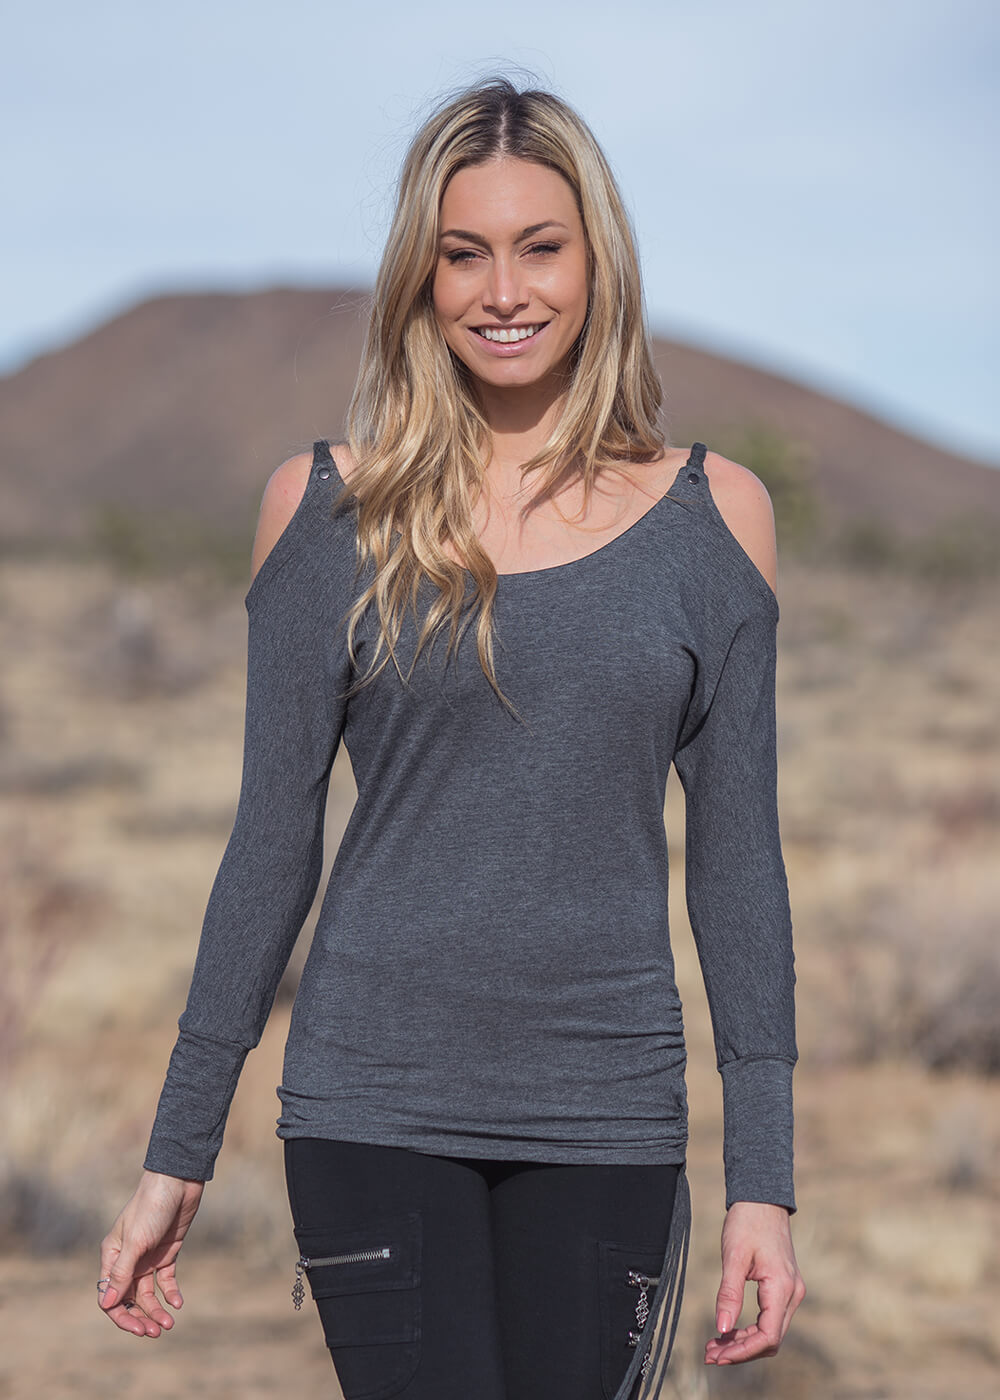 Celeste Tunic in Organic Cotton & Bamboo - Nomads Hemp Wear